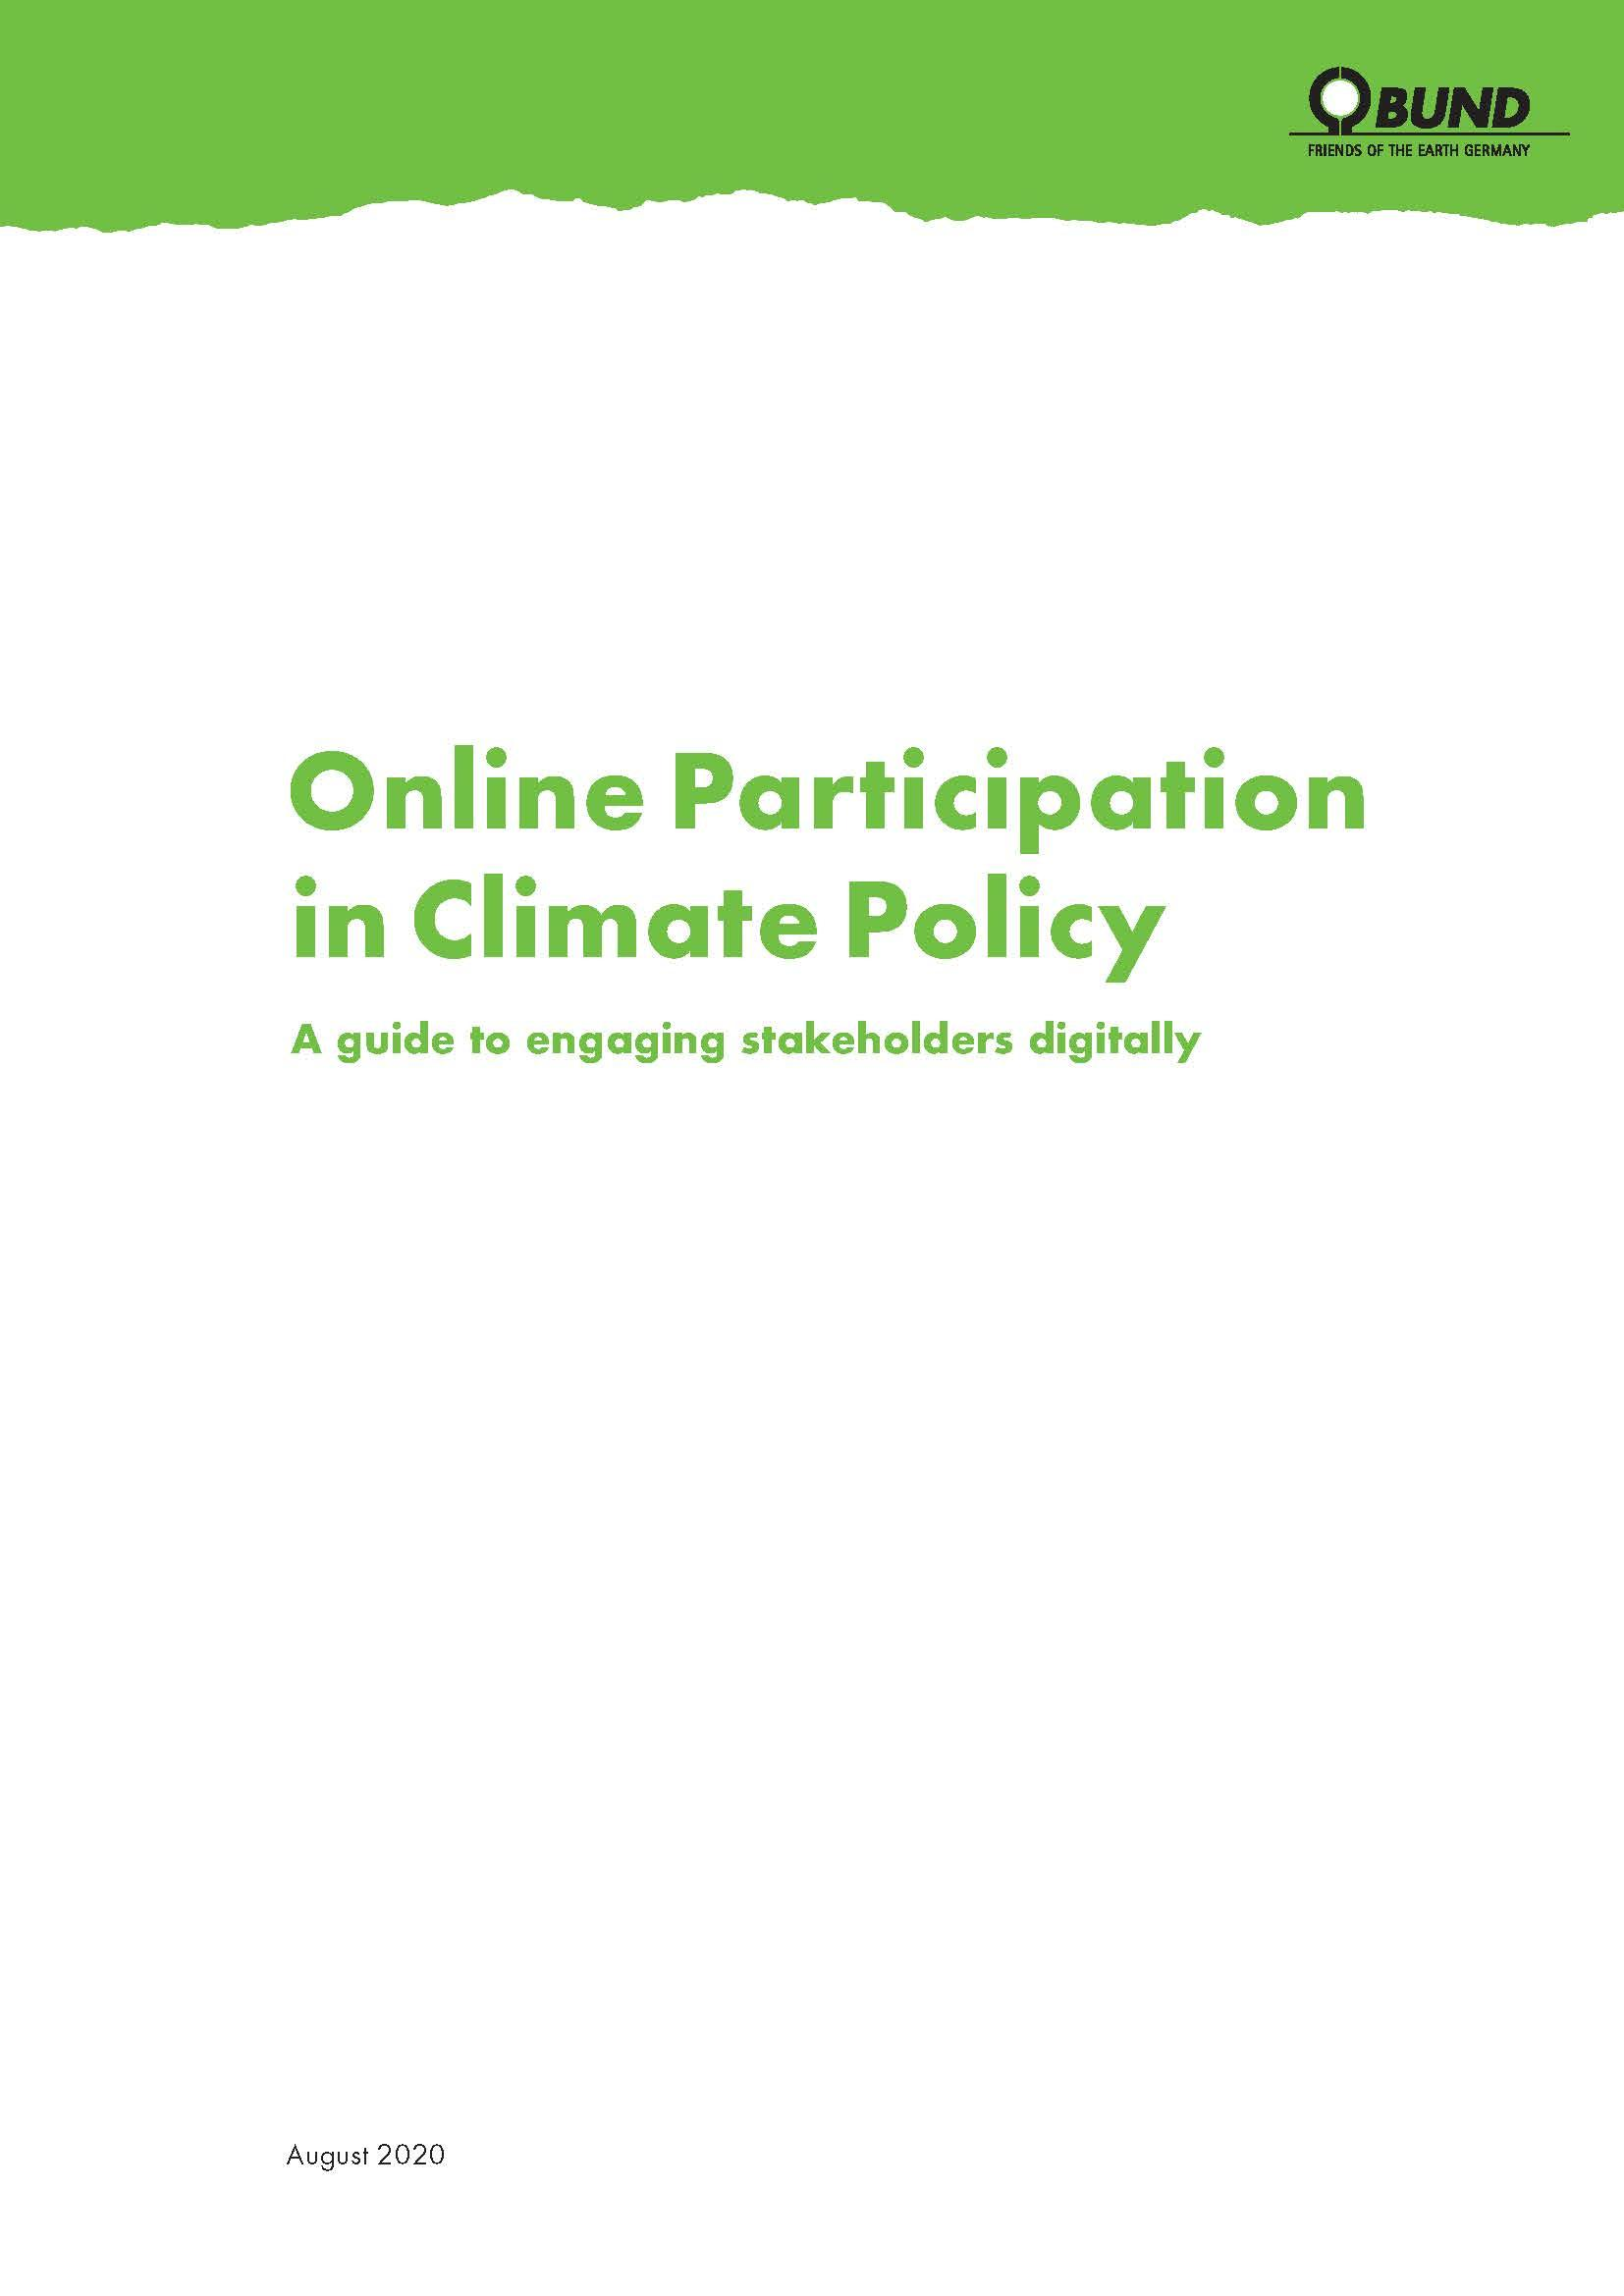 Online Participation in Climate Policy